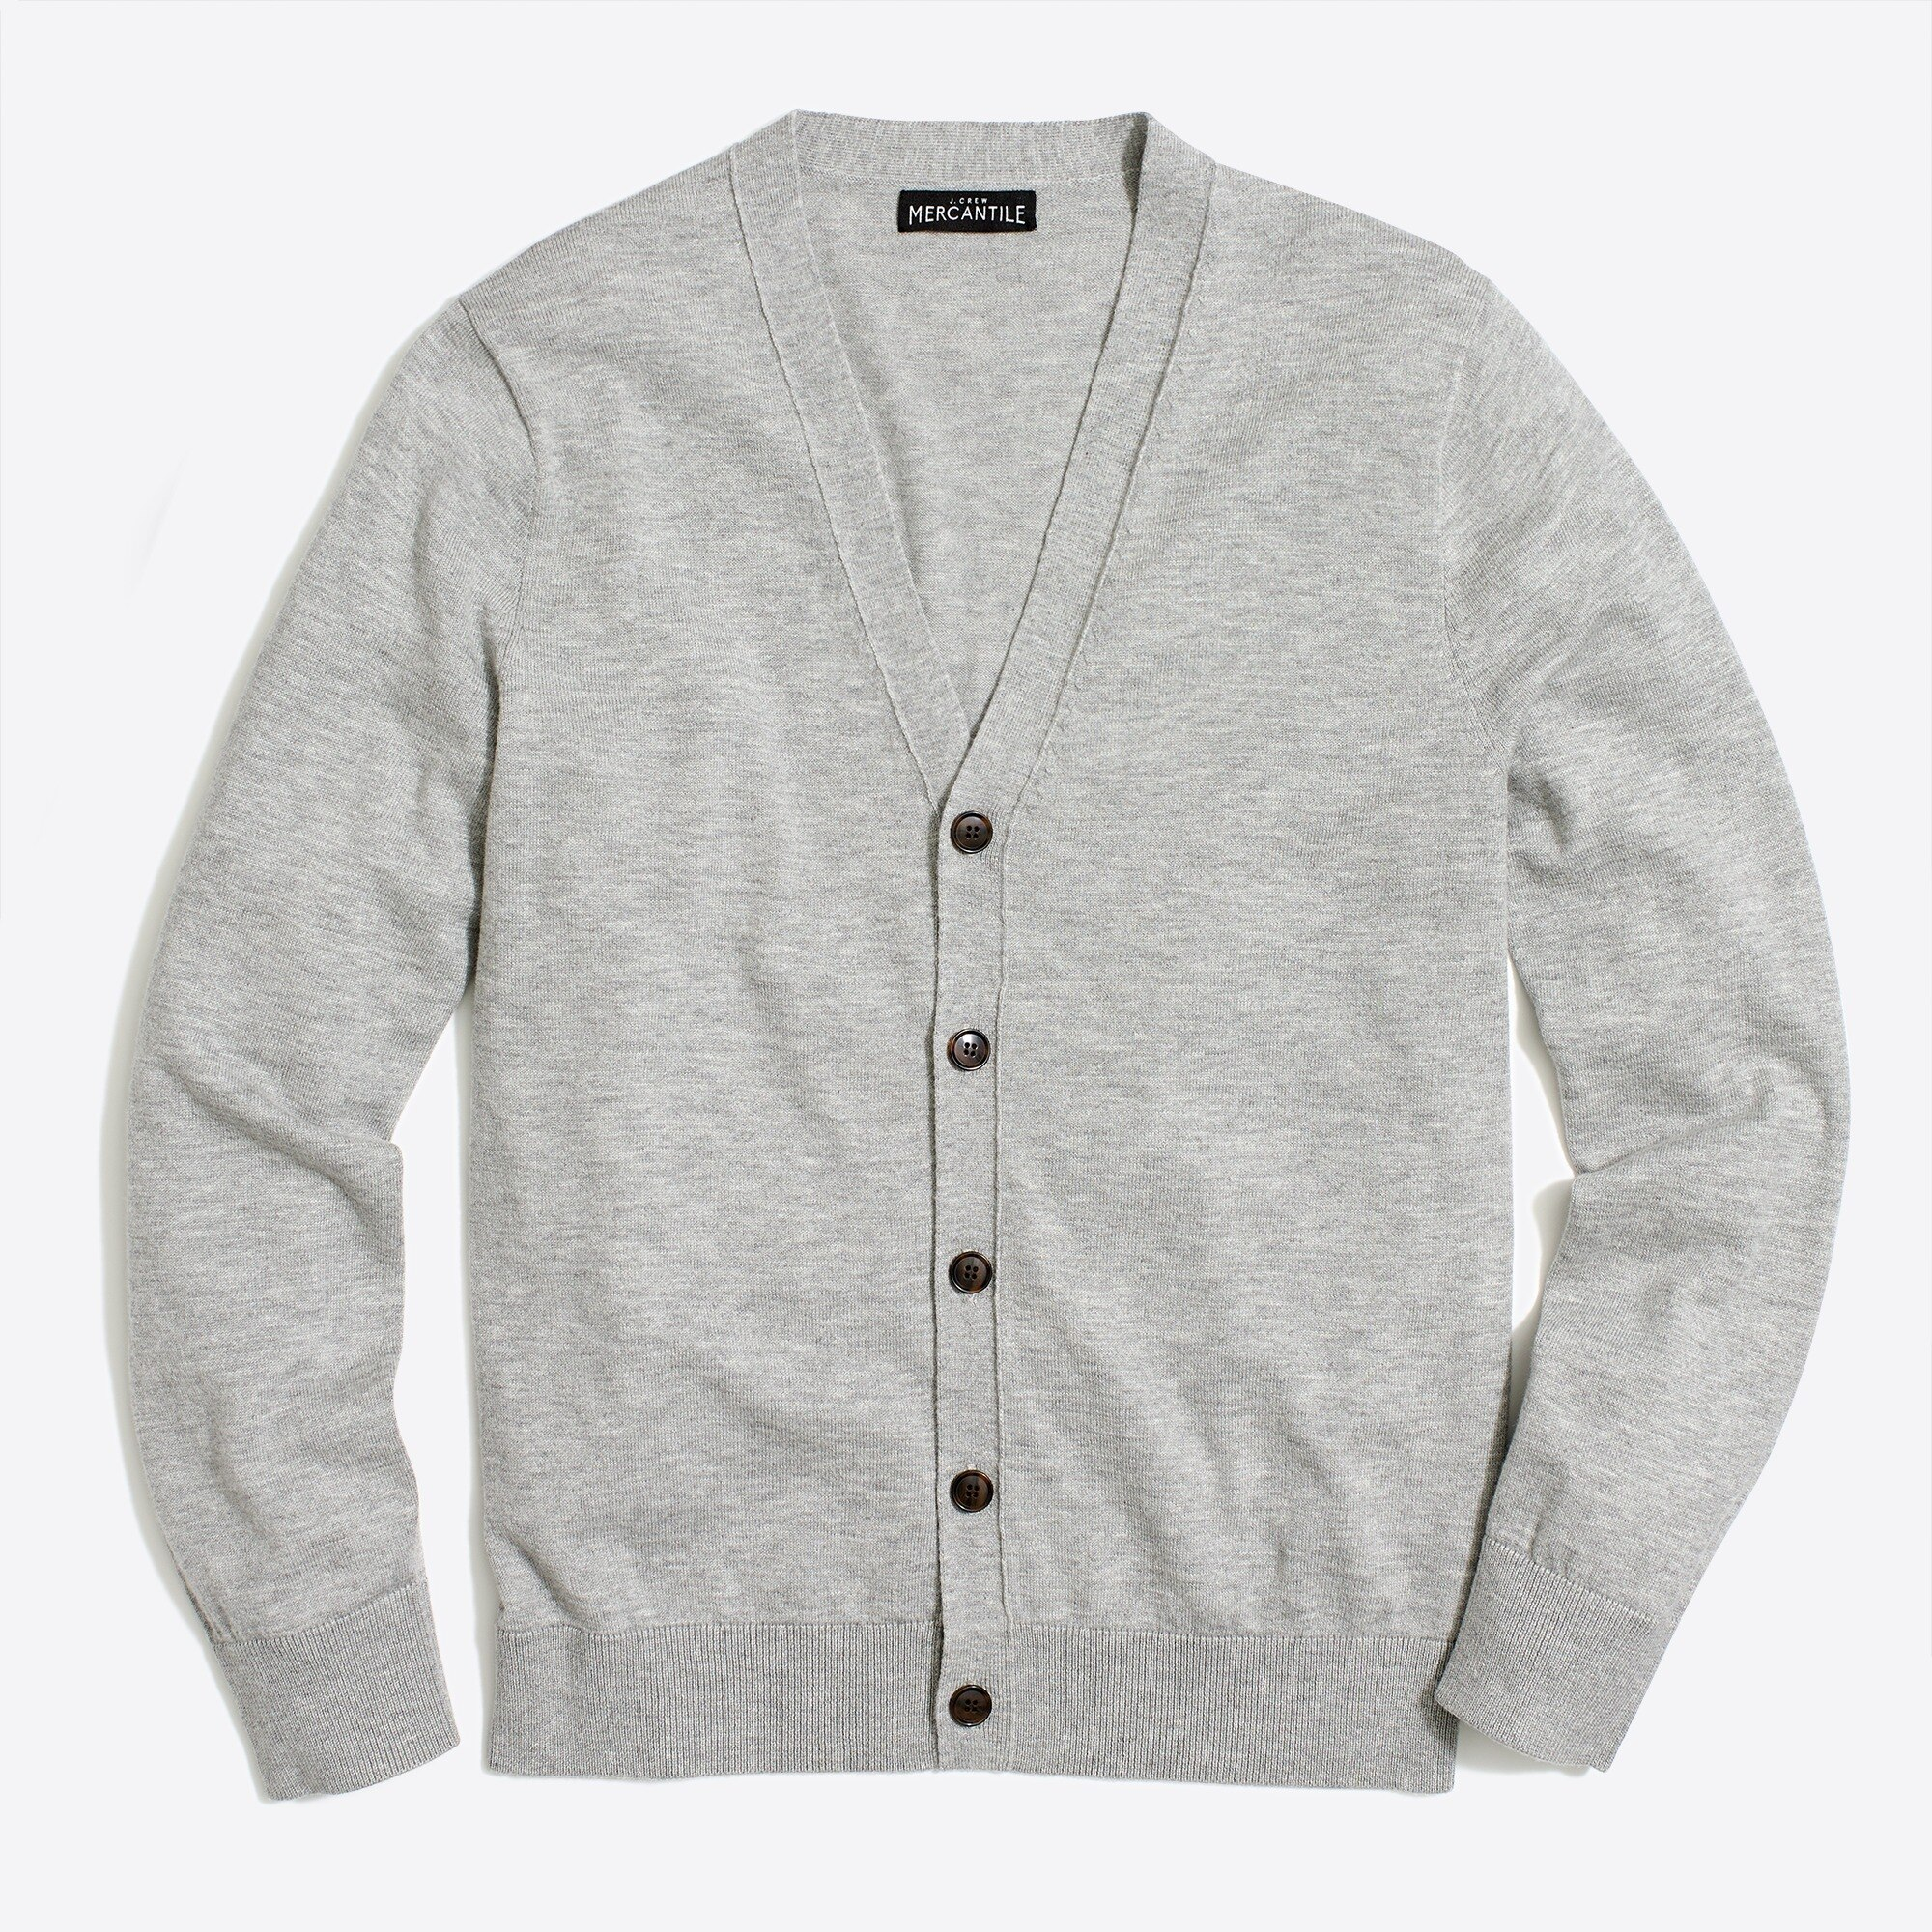 factory mens Cardigan sweater in perfect merino blend